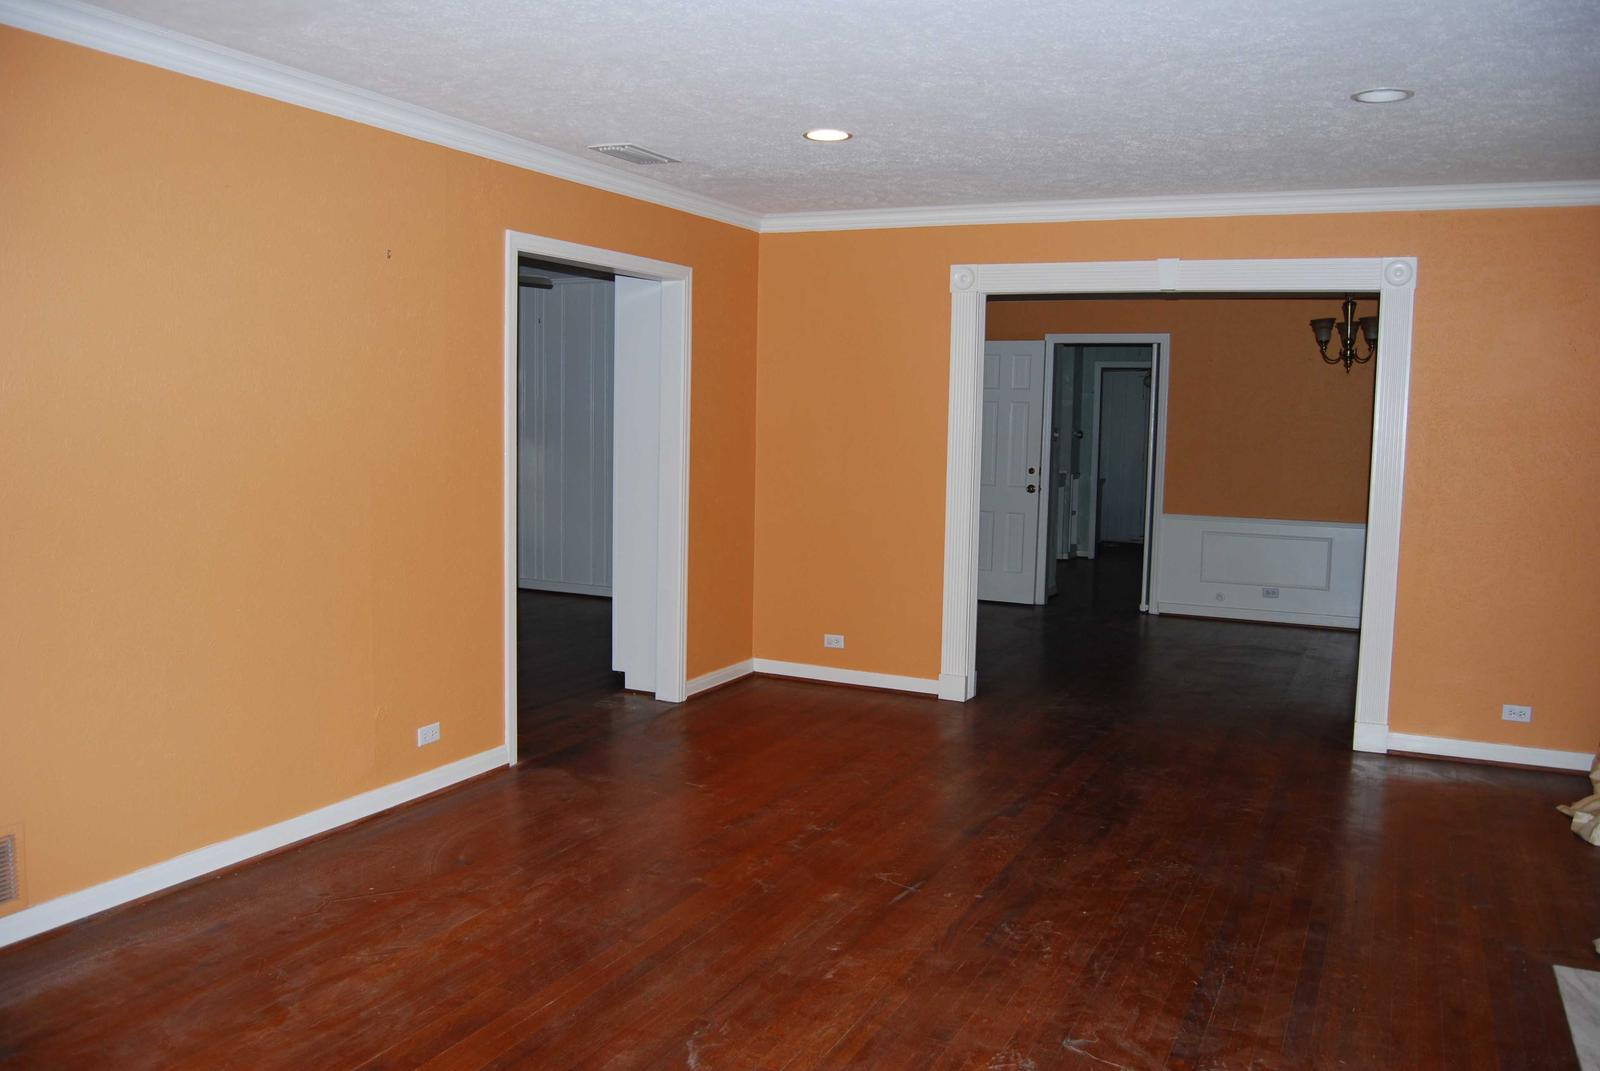 Look at pics and help suggest wall color hardwood floors paint ceiling home interior - House interior colours ...